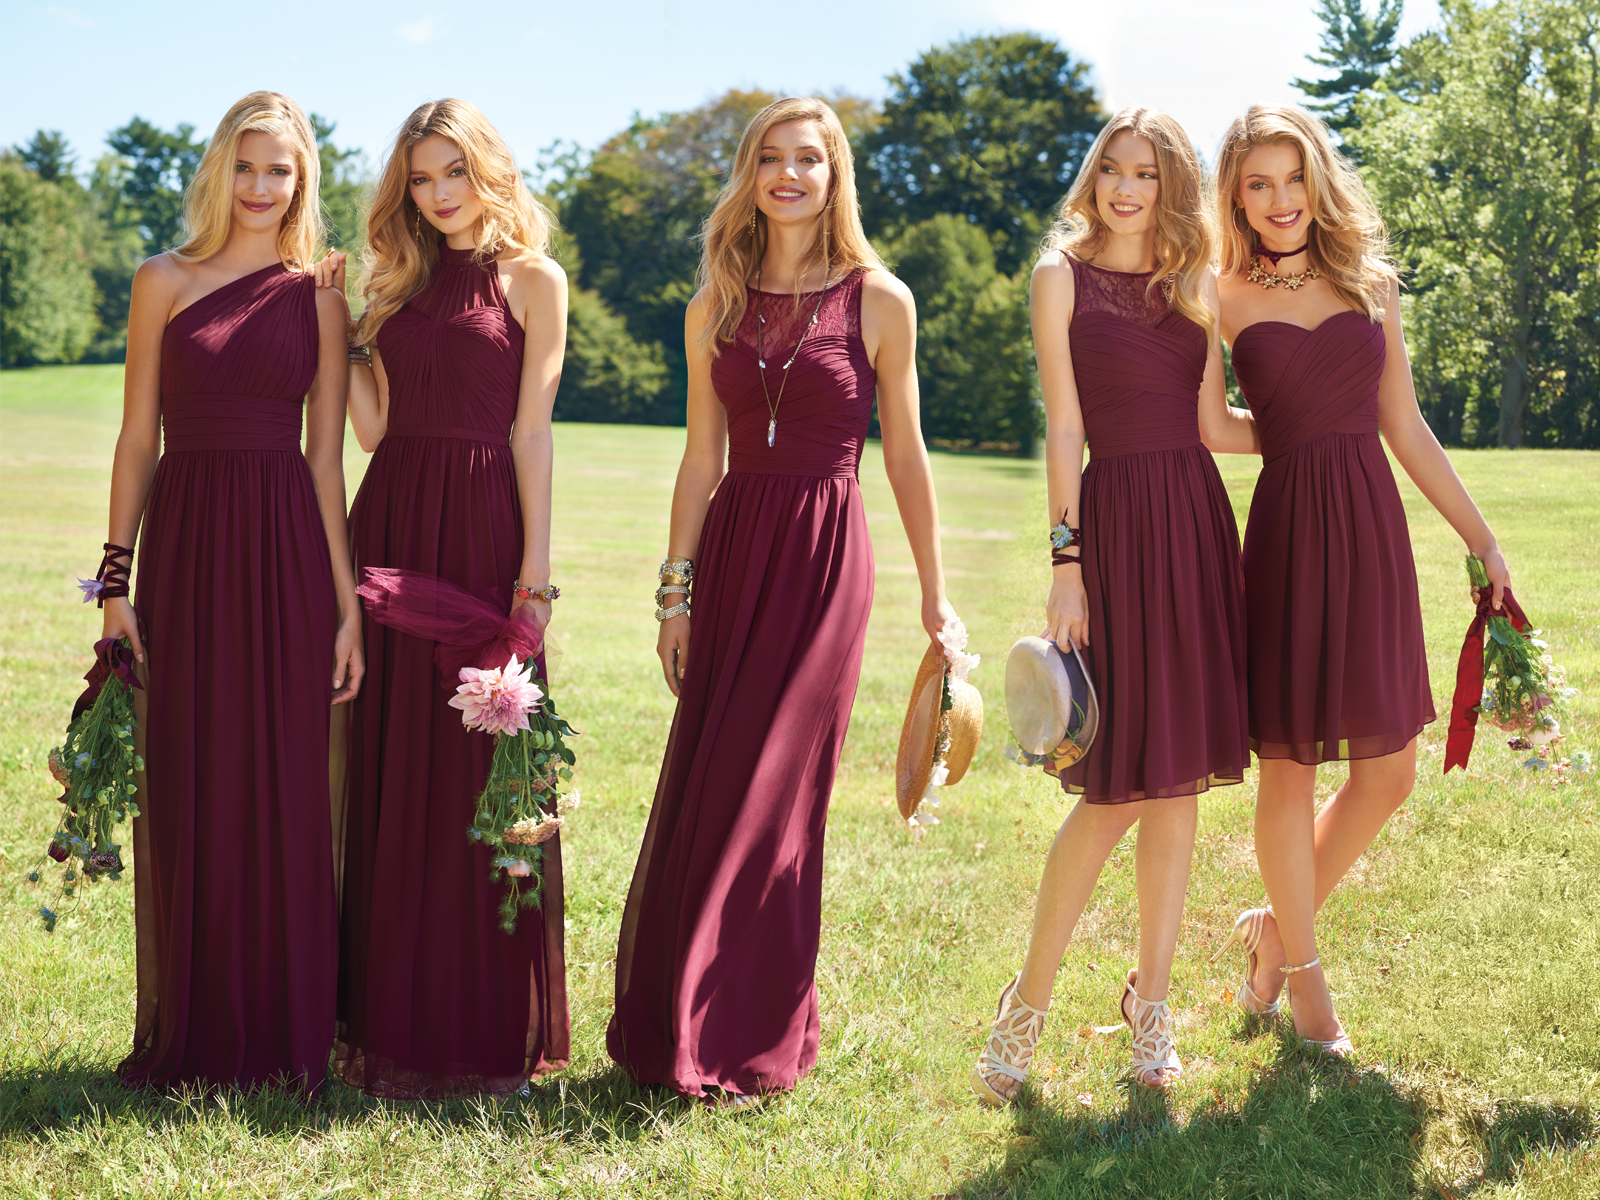 Bridesmaid Dresses by Camille La Vie